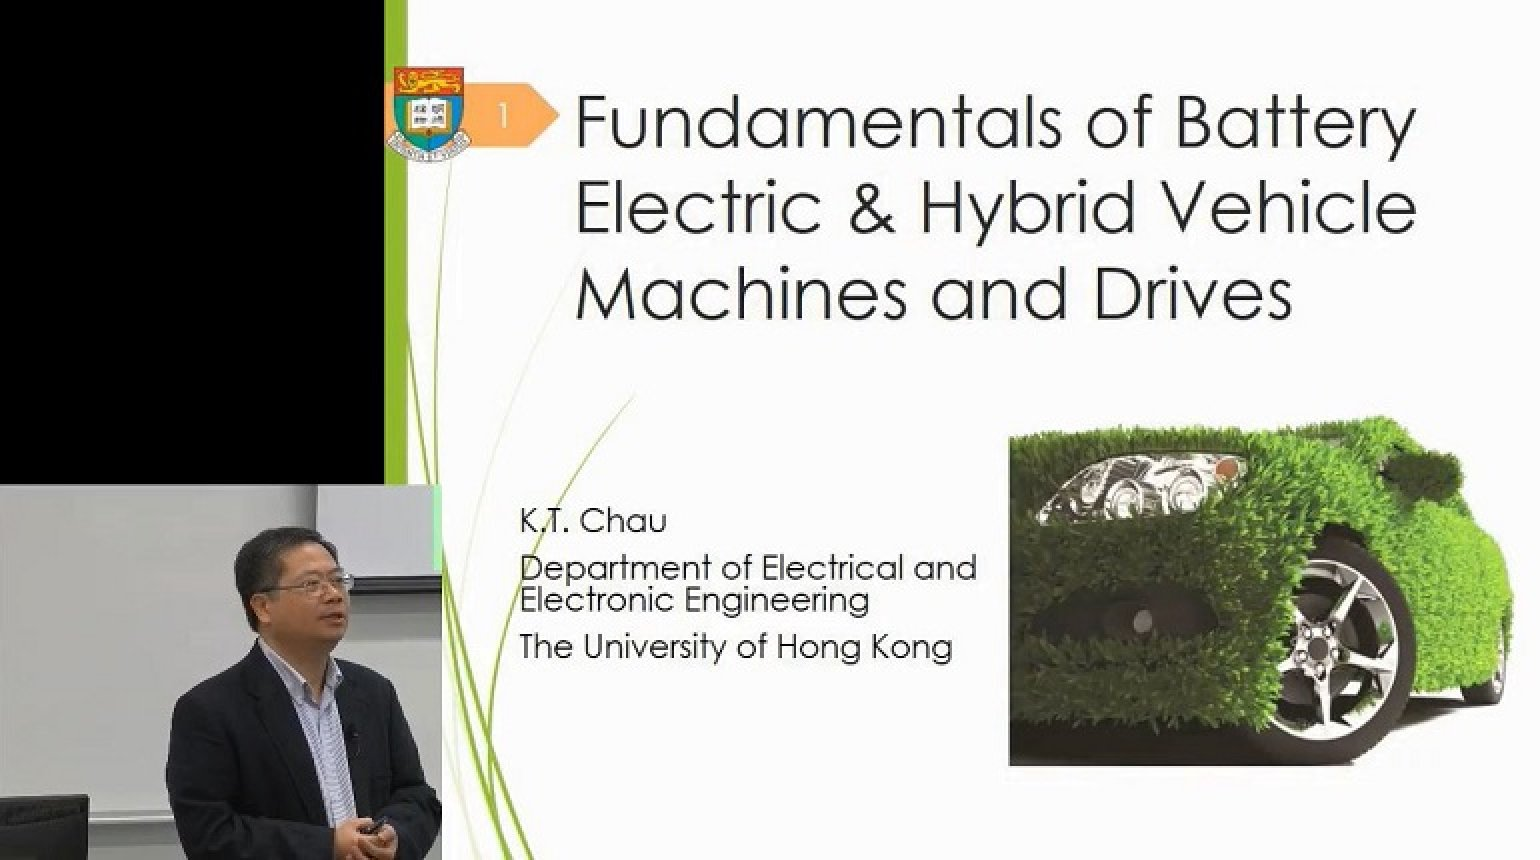 Video - Fundamentals of Battery Electric and Hybrid Vehicle Machines and Drives